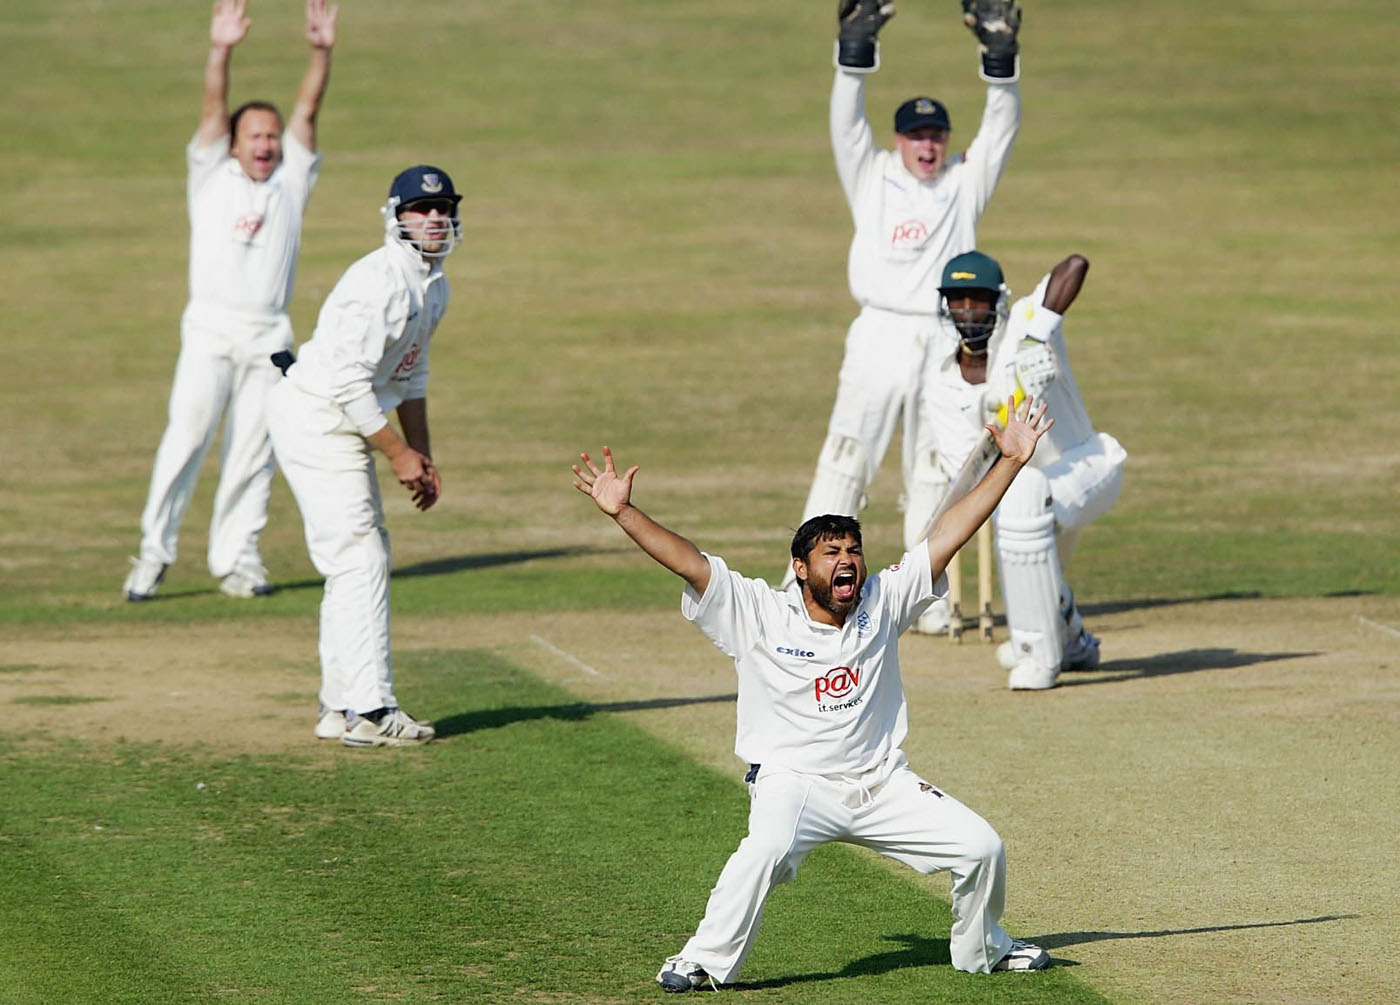 Mushtaq Ahmed picked up four wickets in Leicestershire's first innings